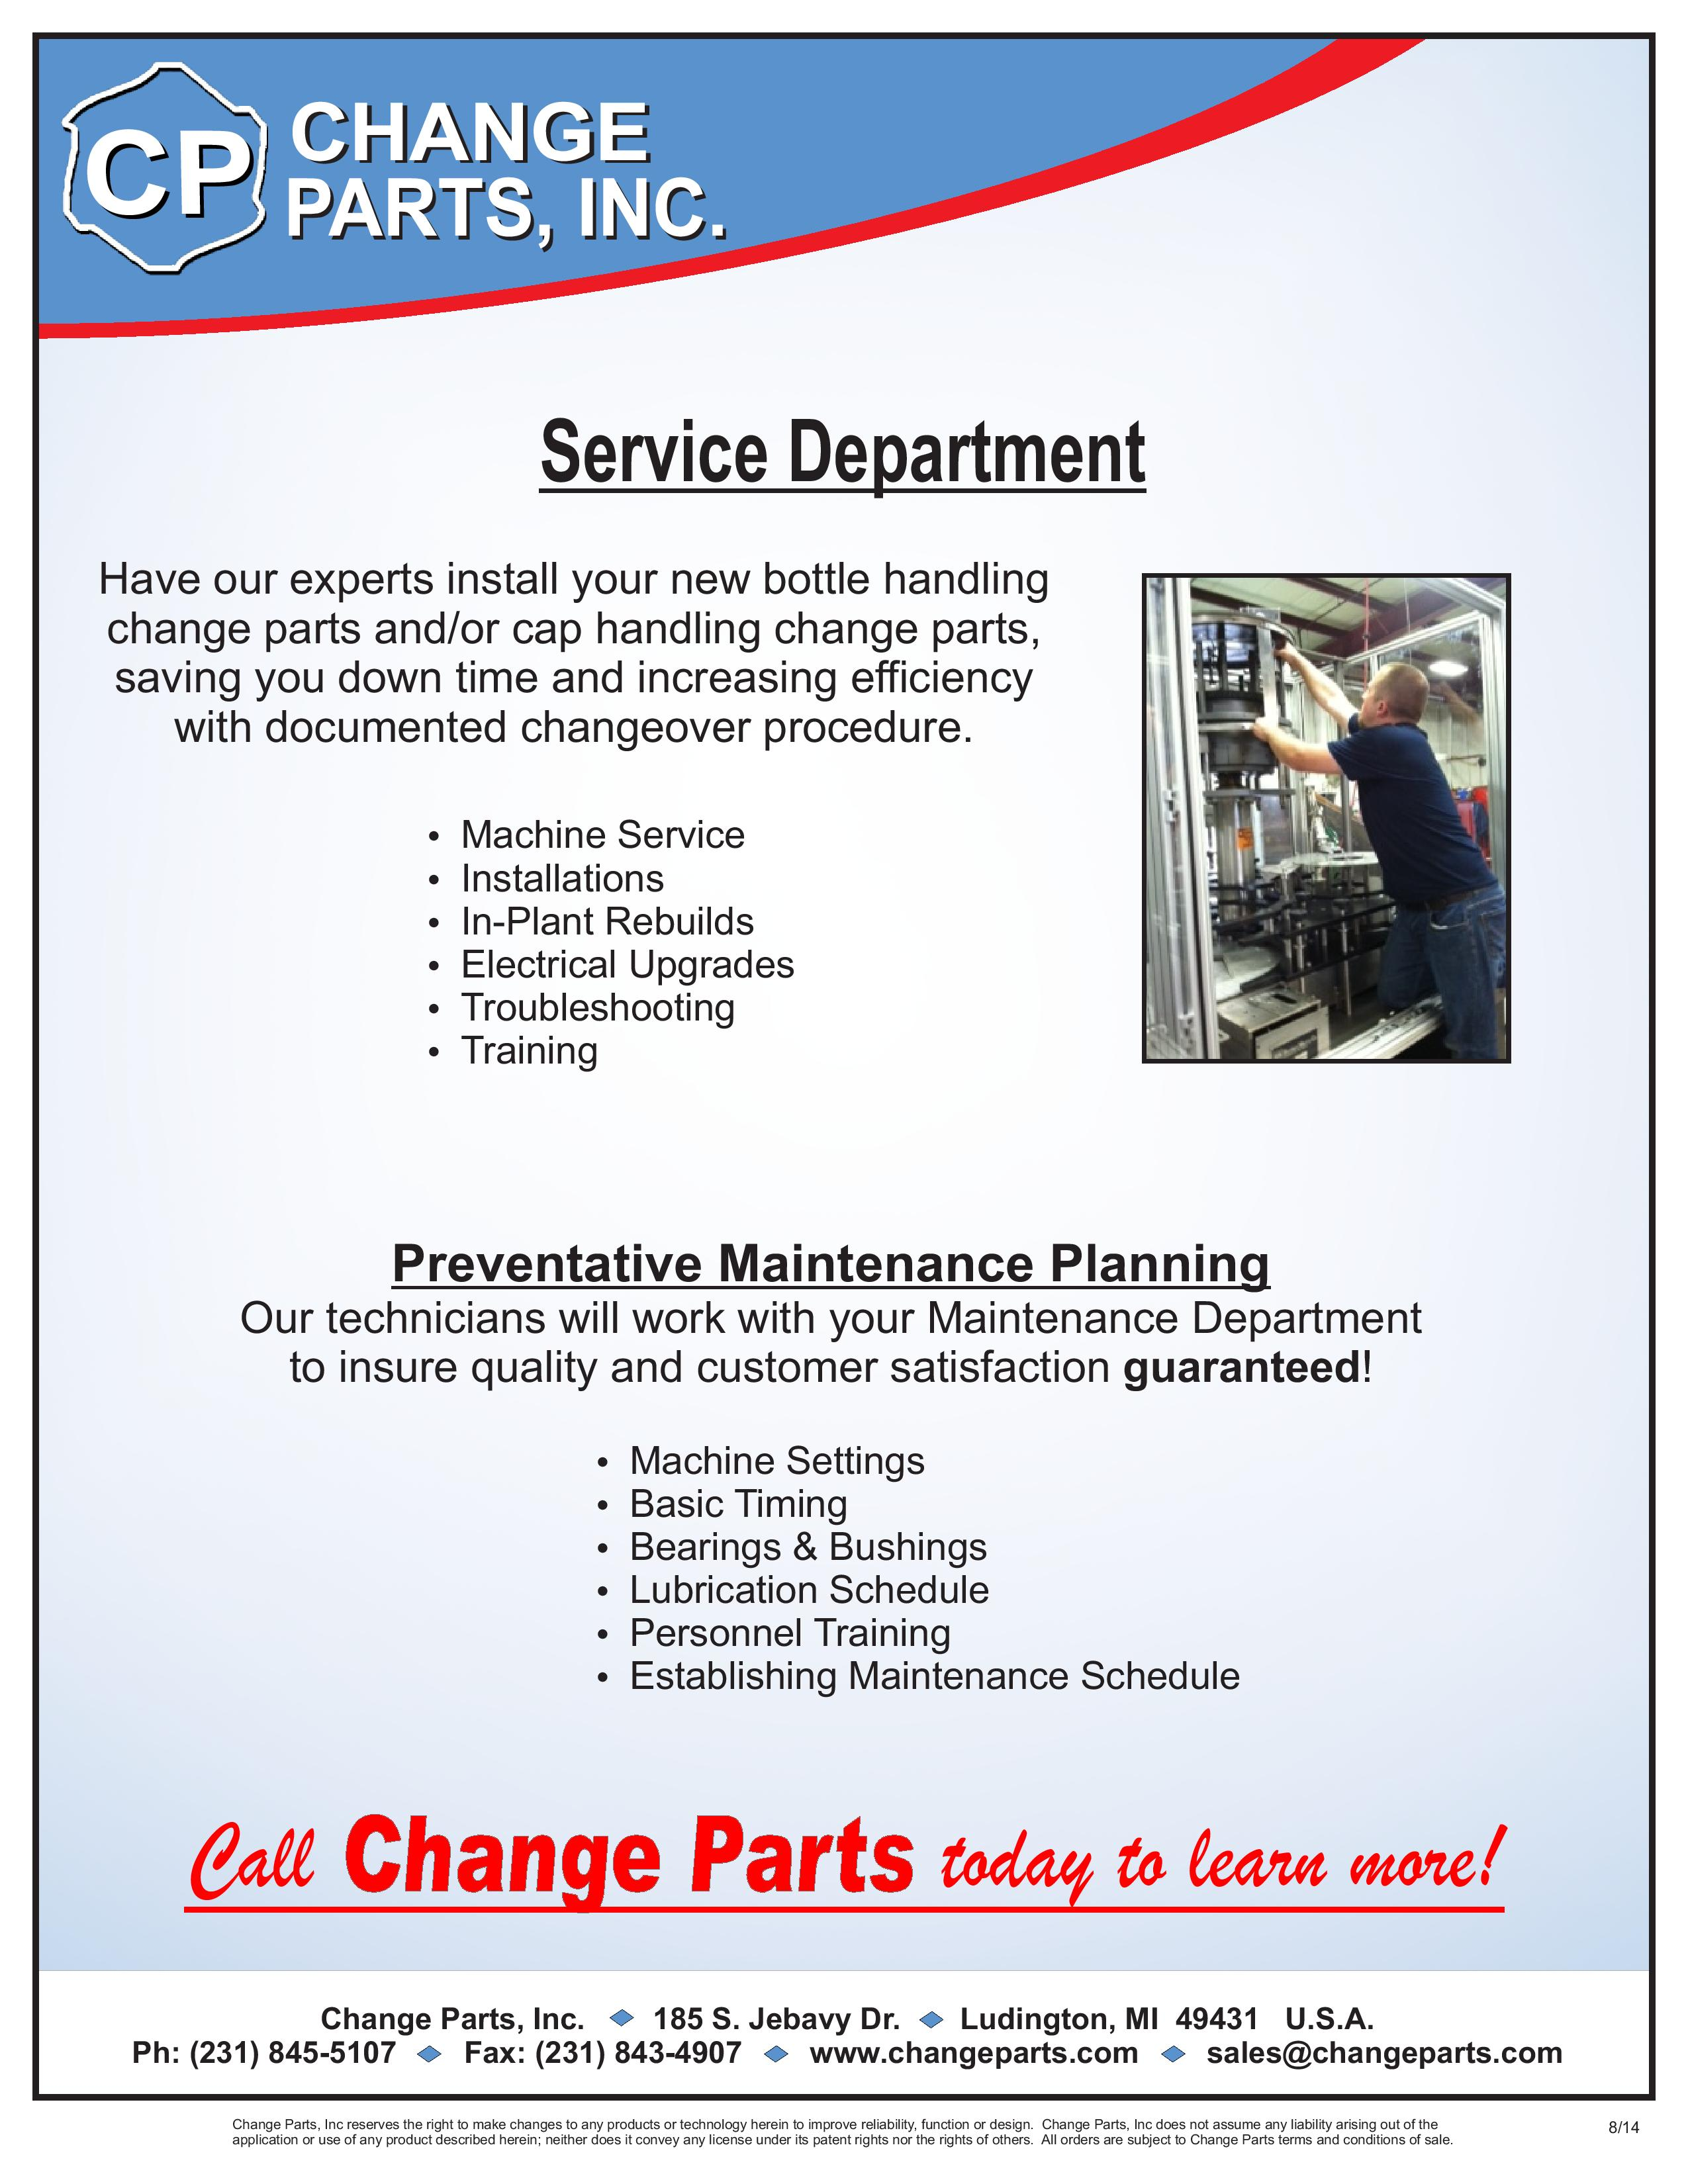 cpi-service-department-page-001.jpg